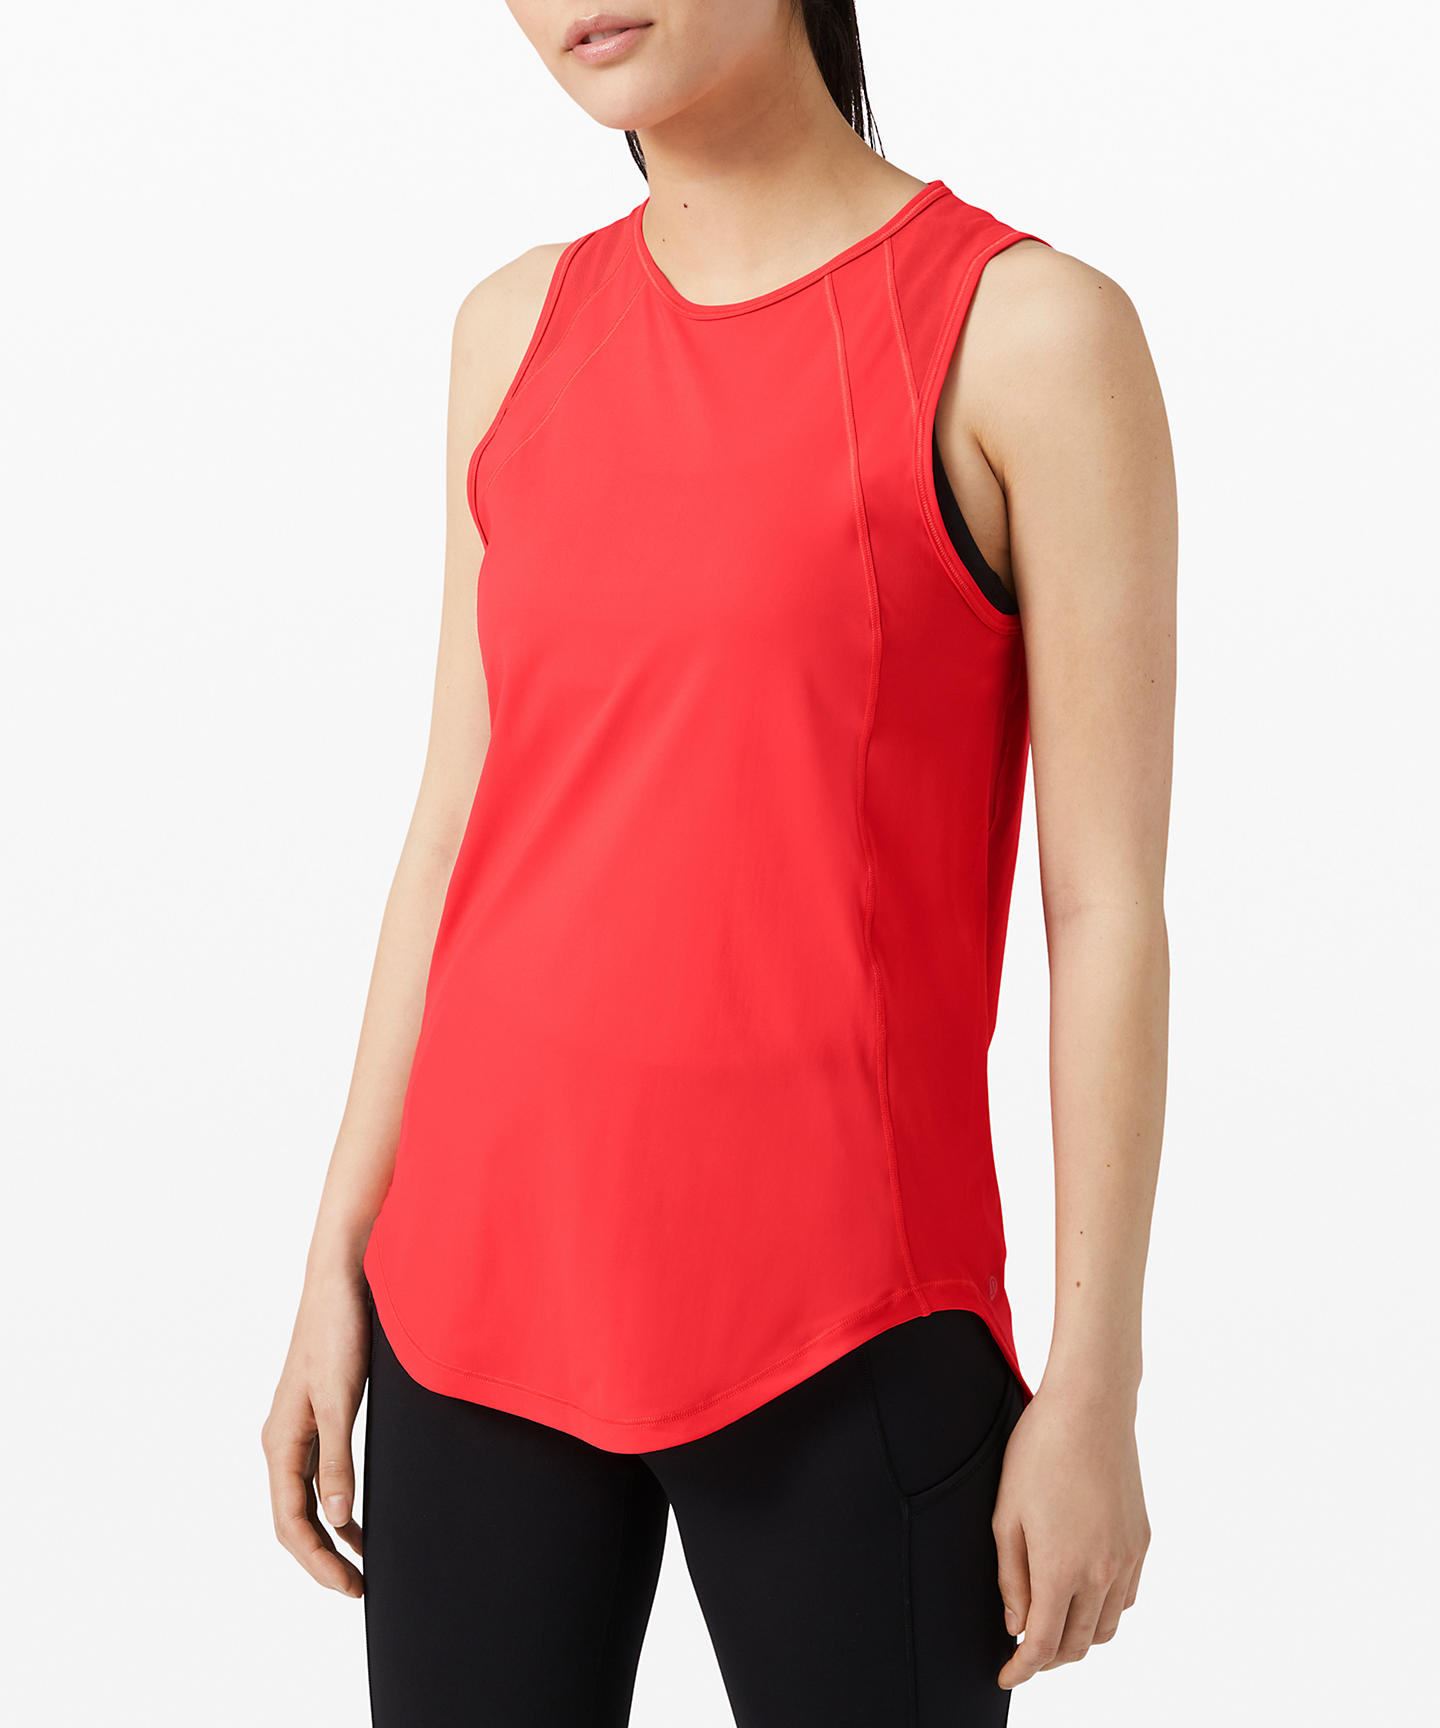 Sculpt Tank_carnation red_lululemon Upload